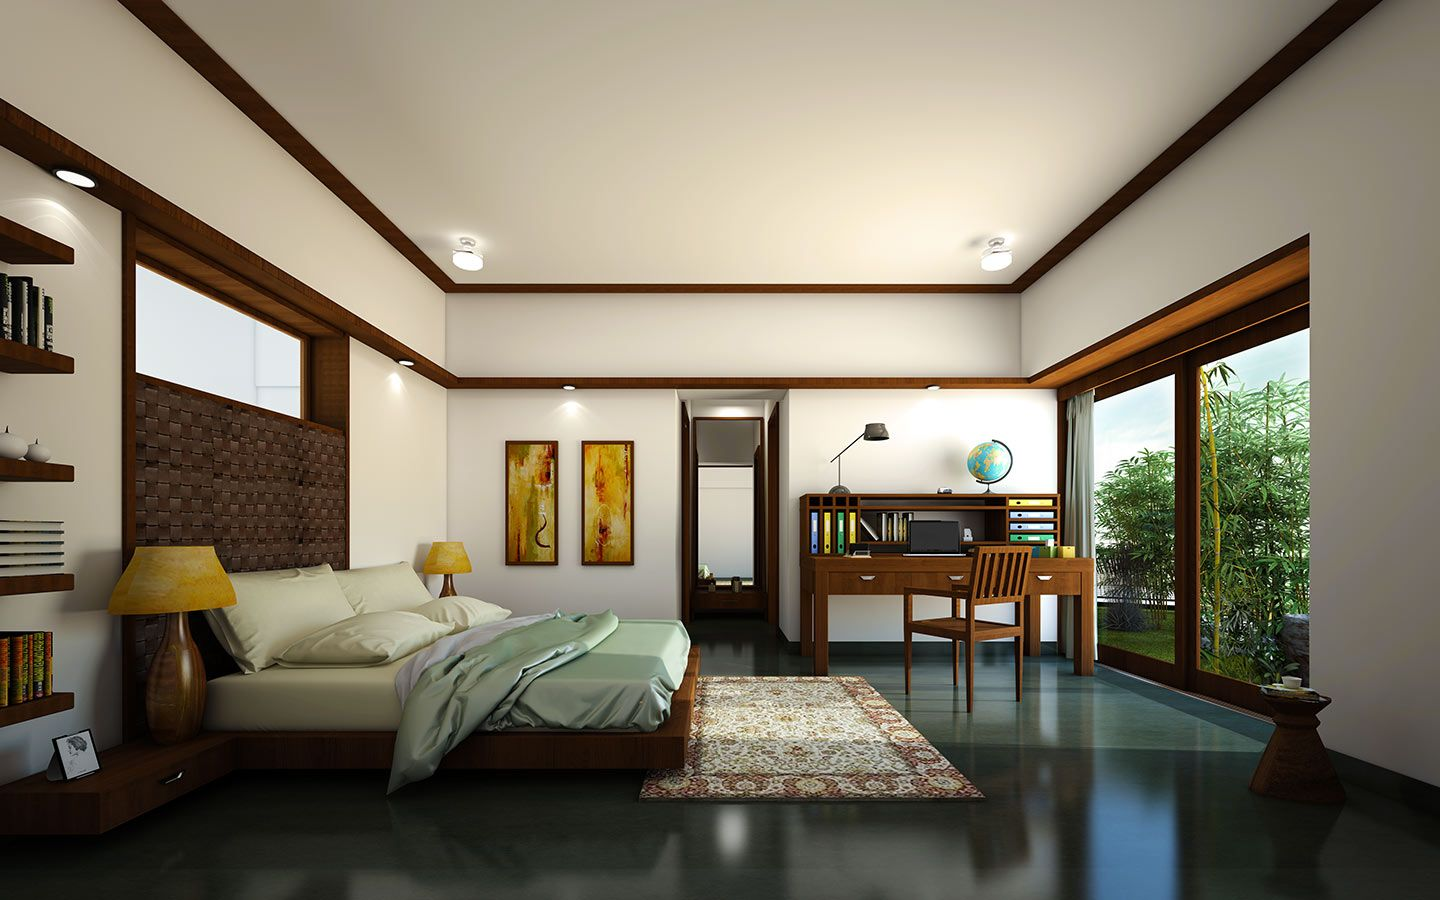 Total Environment Residential Project In South Bangalore At Jp Nagar Has Furnished Customisable Three And Four Bed Room Apartments